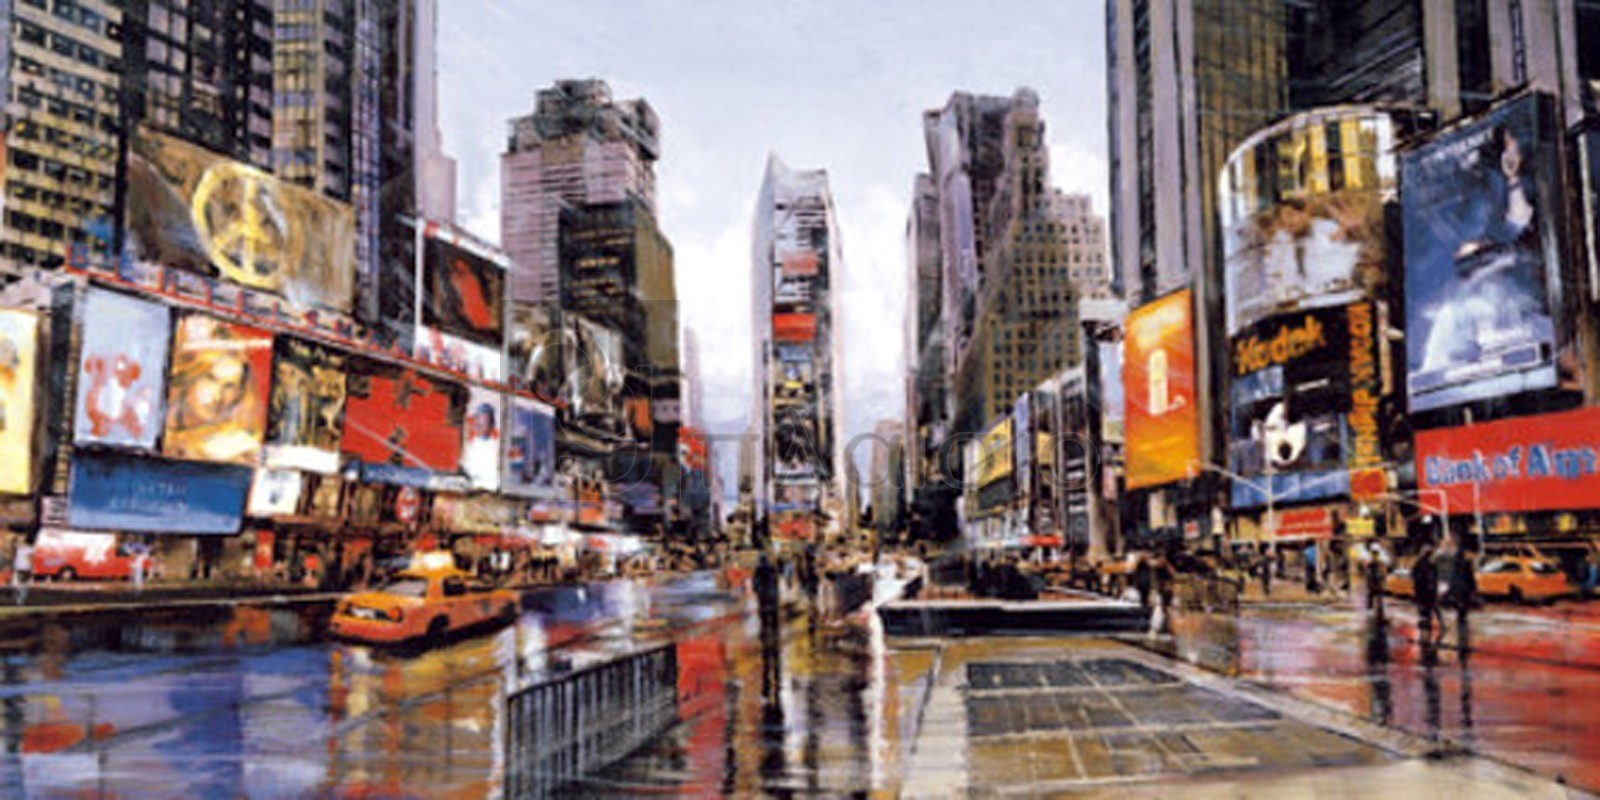 Matthew Daniels - Evening in Times Square